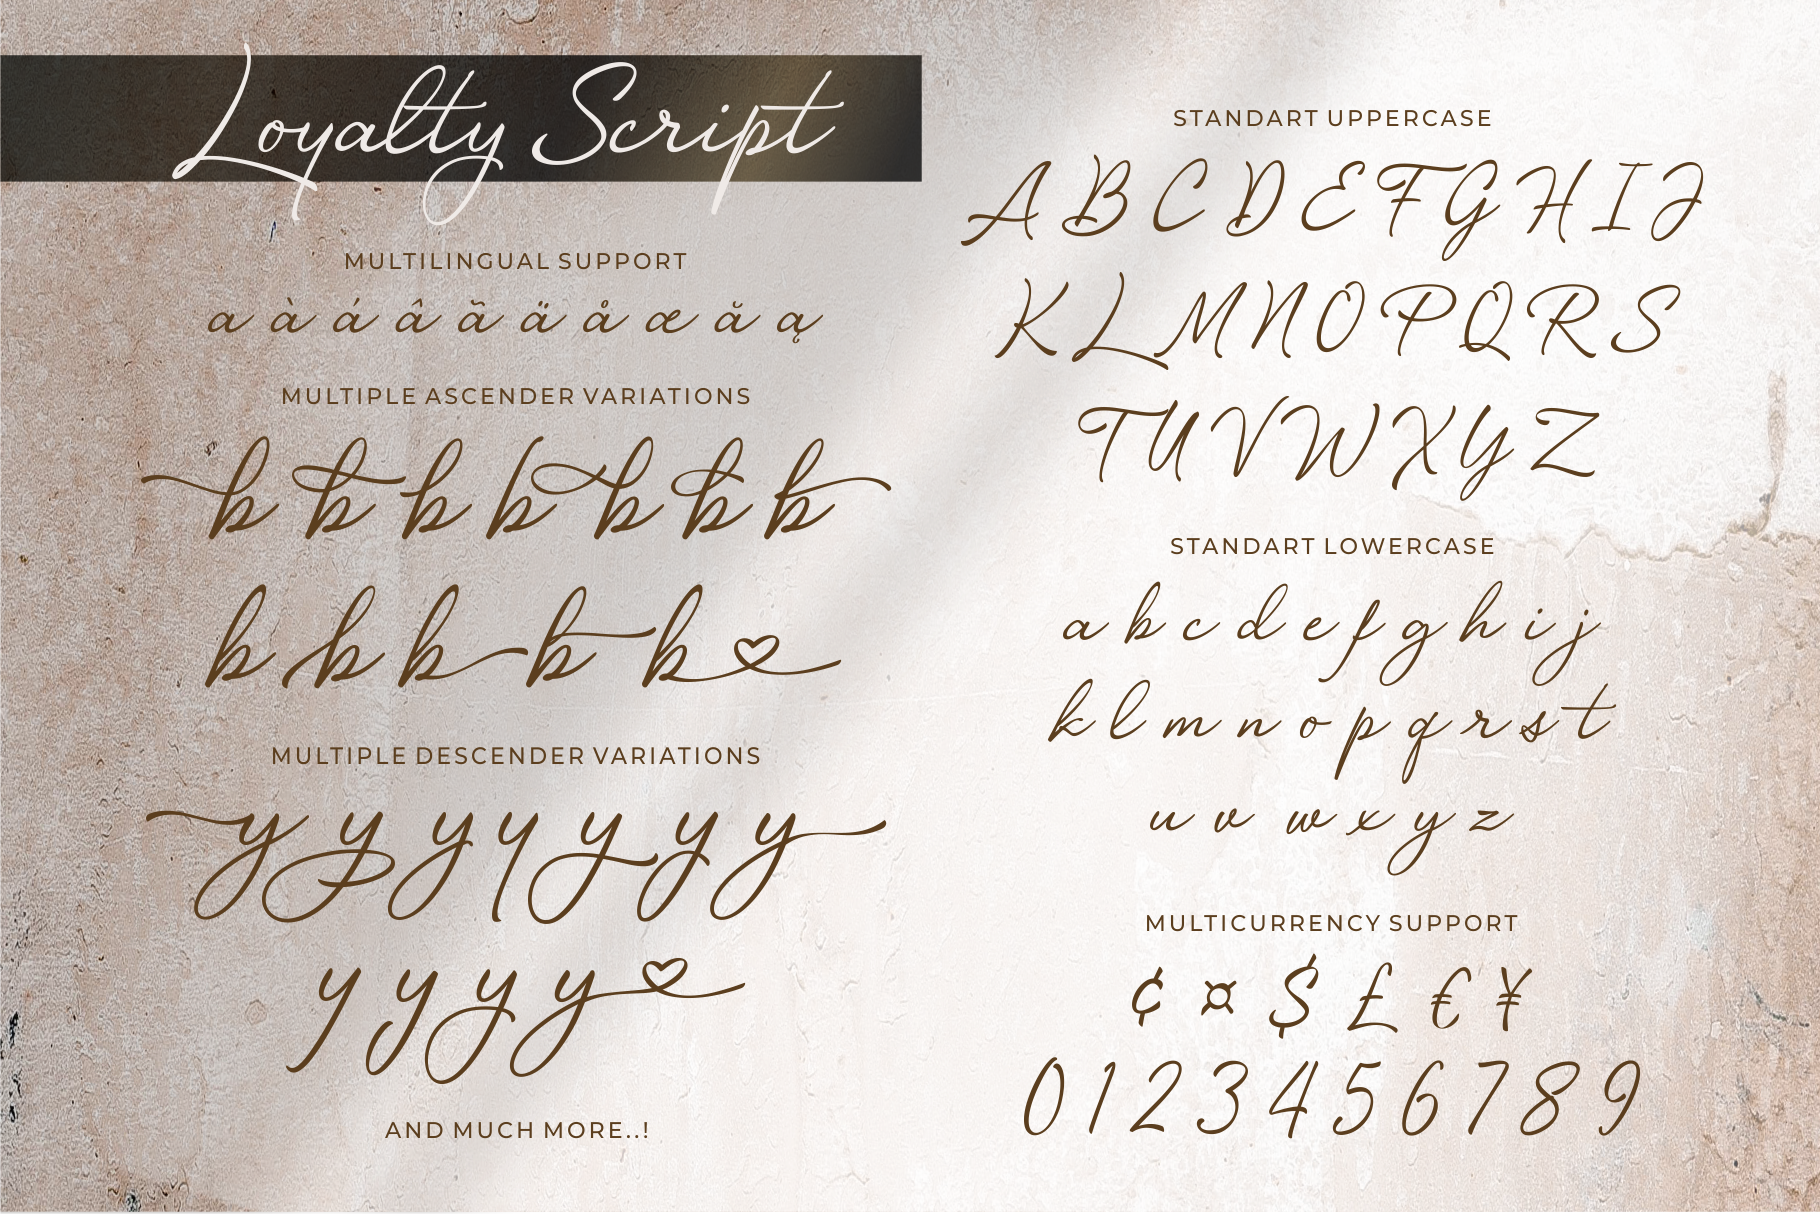 Luxury - Loyalty Script Fonts example image 6